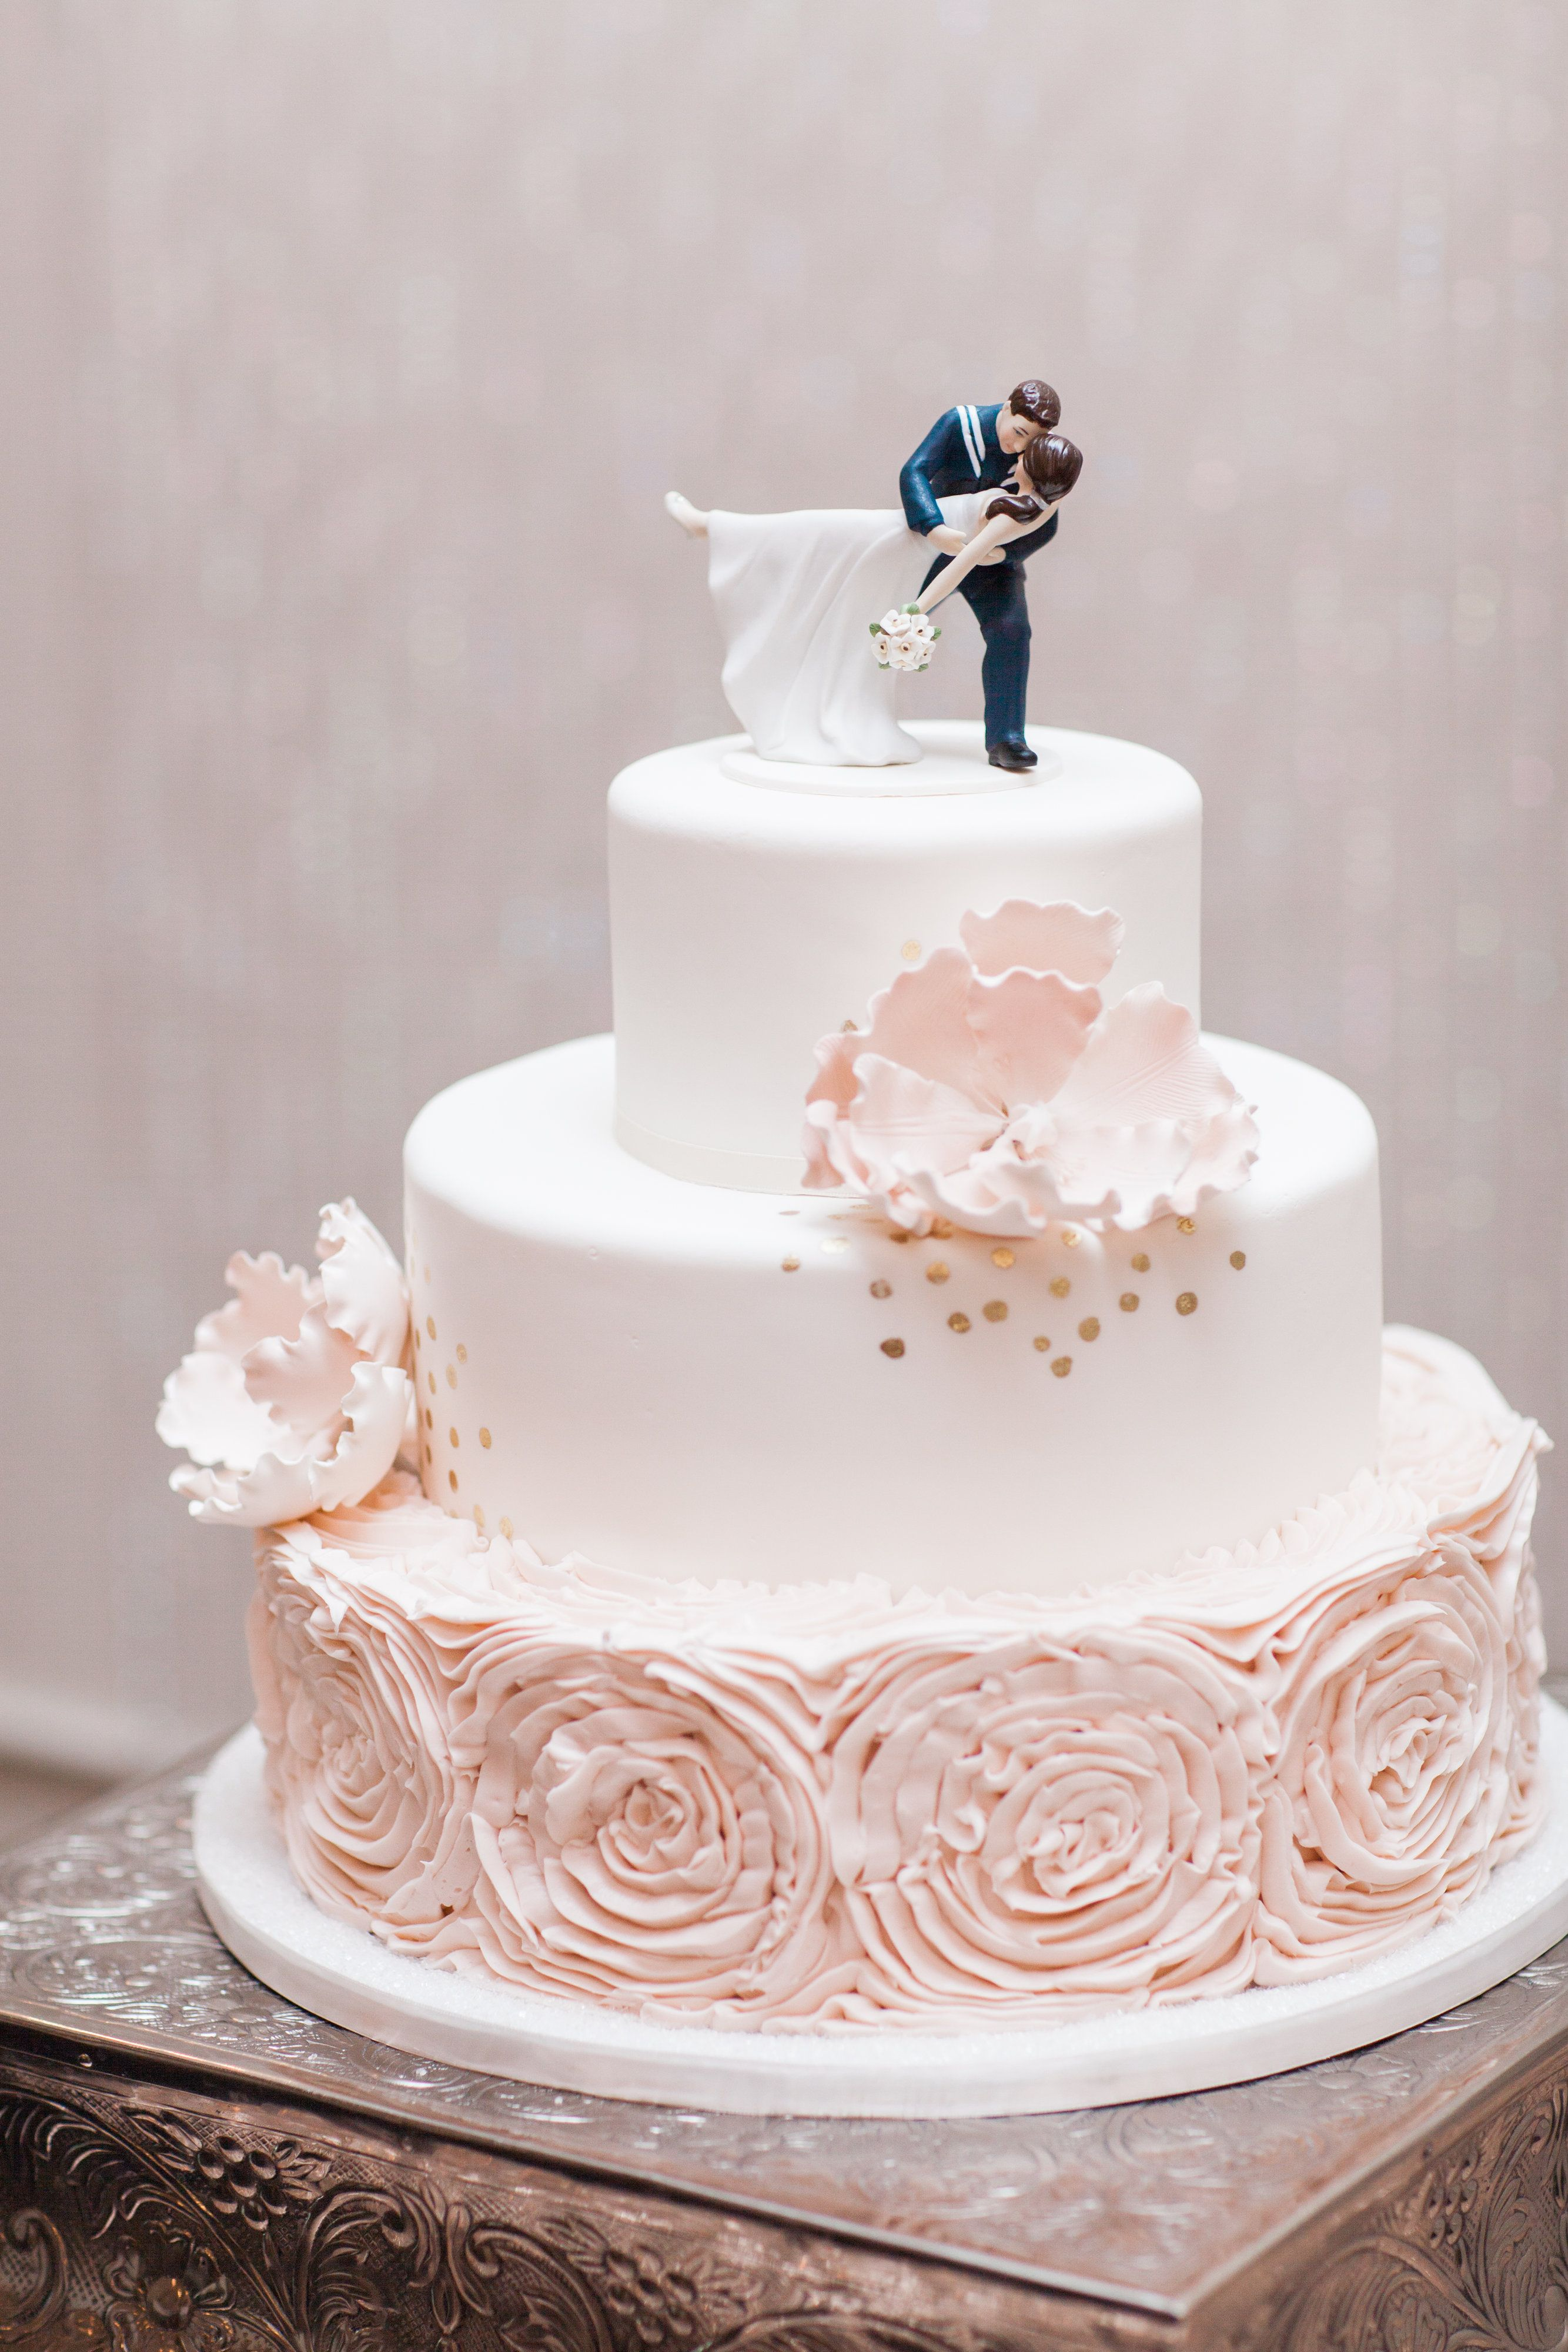 Beautiful cake with military inspired cake topper! #azwedding ...